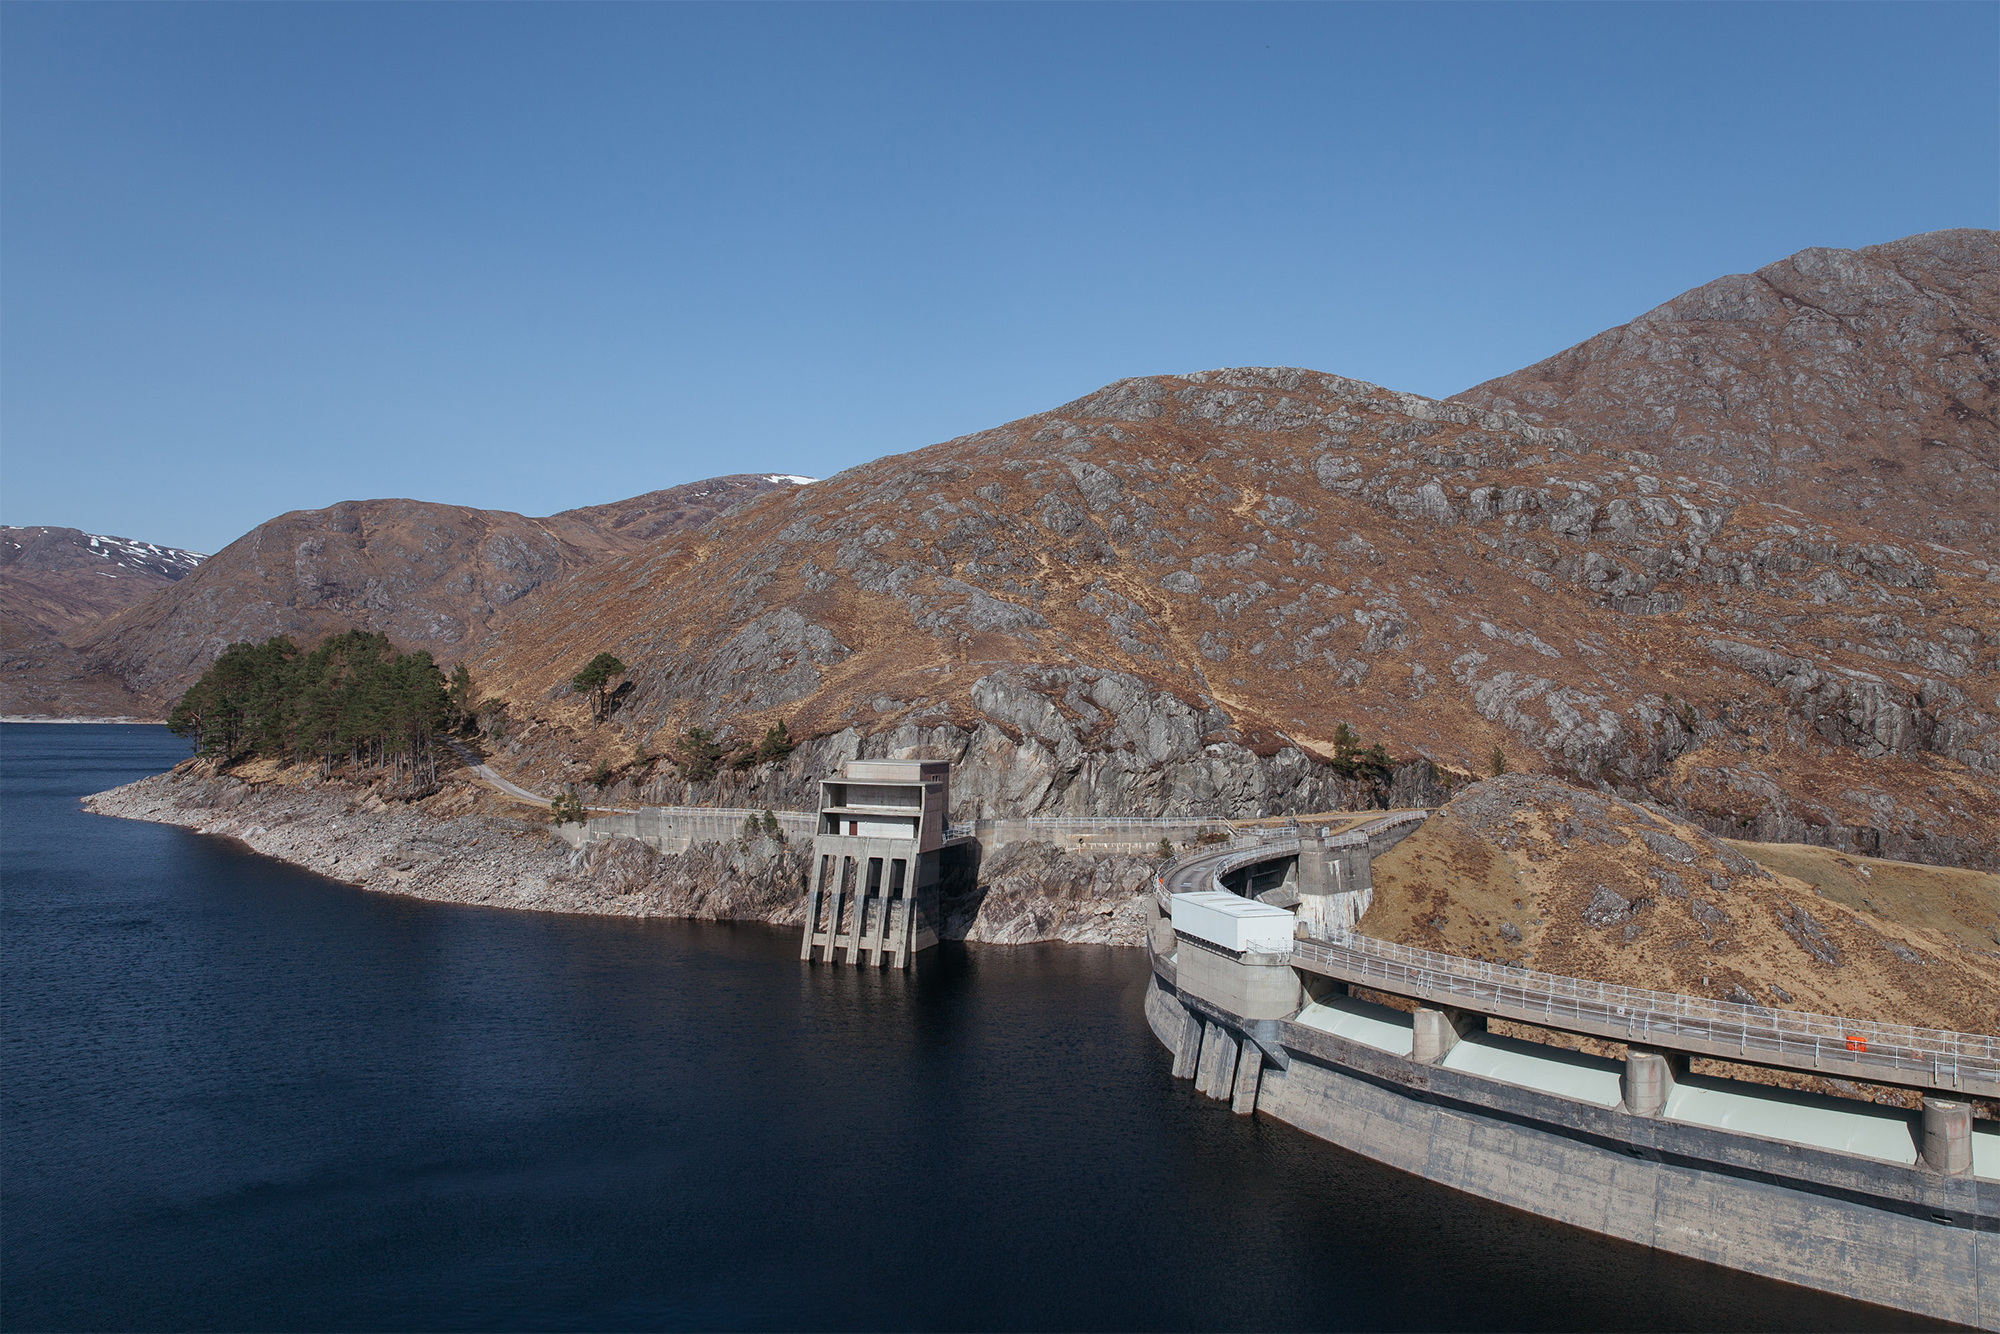 The curved Monar Dam holding back deep blue water.